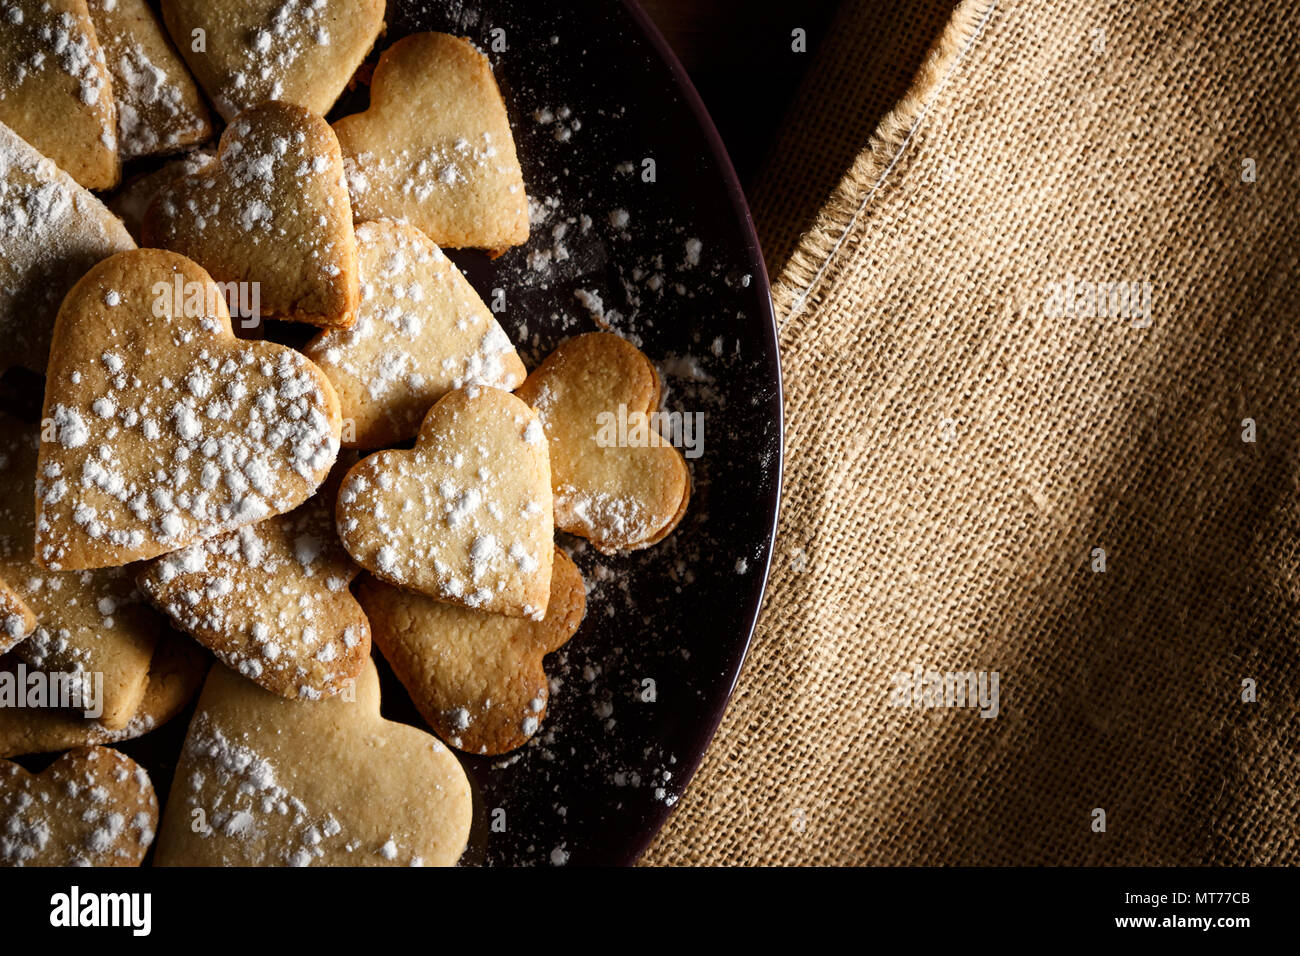 Delicious home-made heart-shaped cookies sprinkled with icing sugar on sackcloth and wooden boards. Horizontal image seen from above. Stock Photo